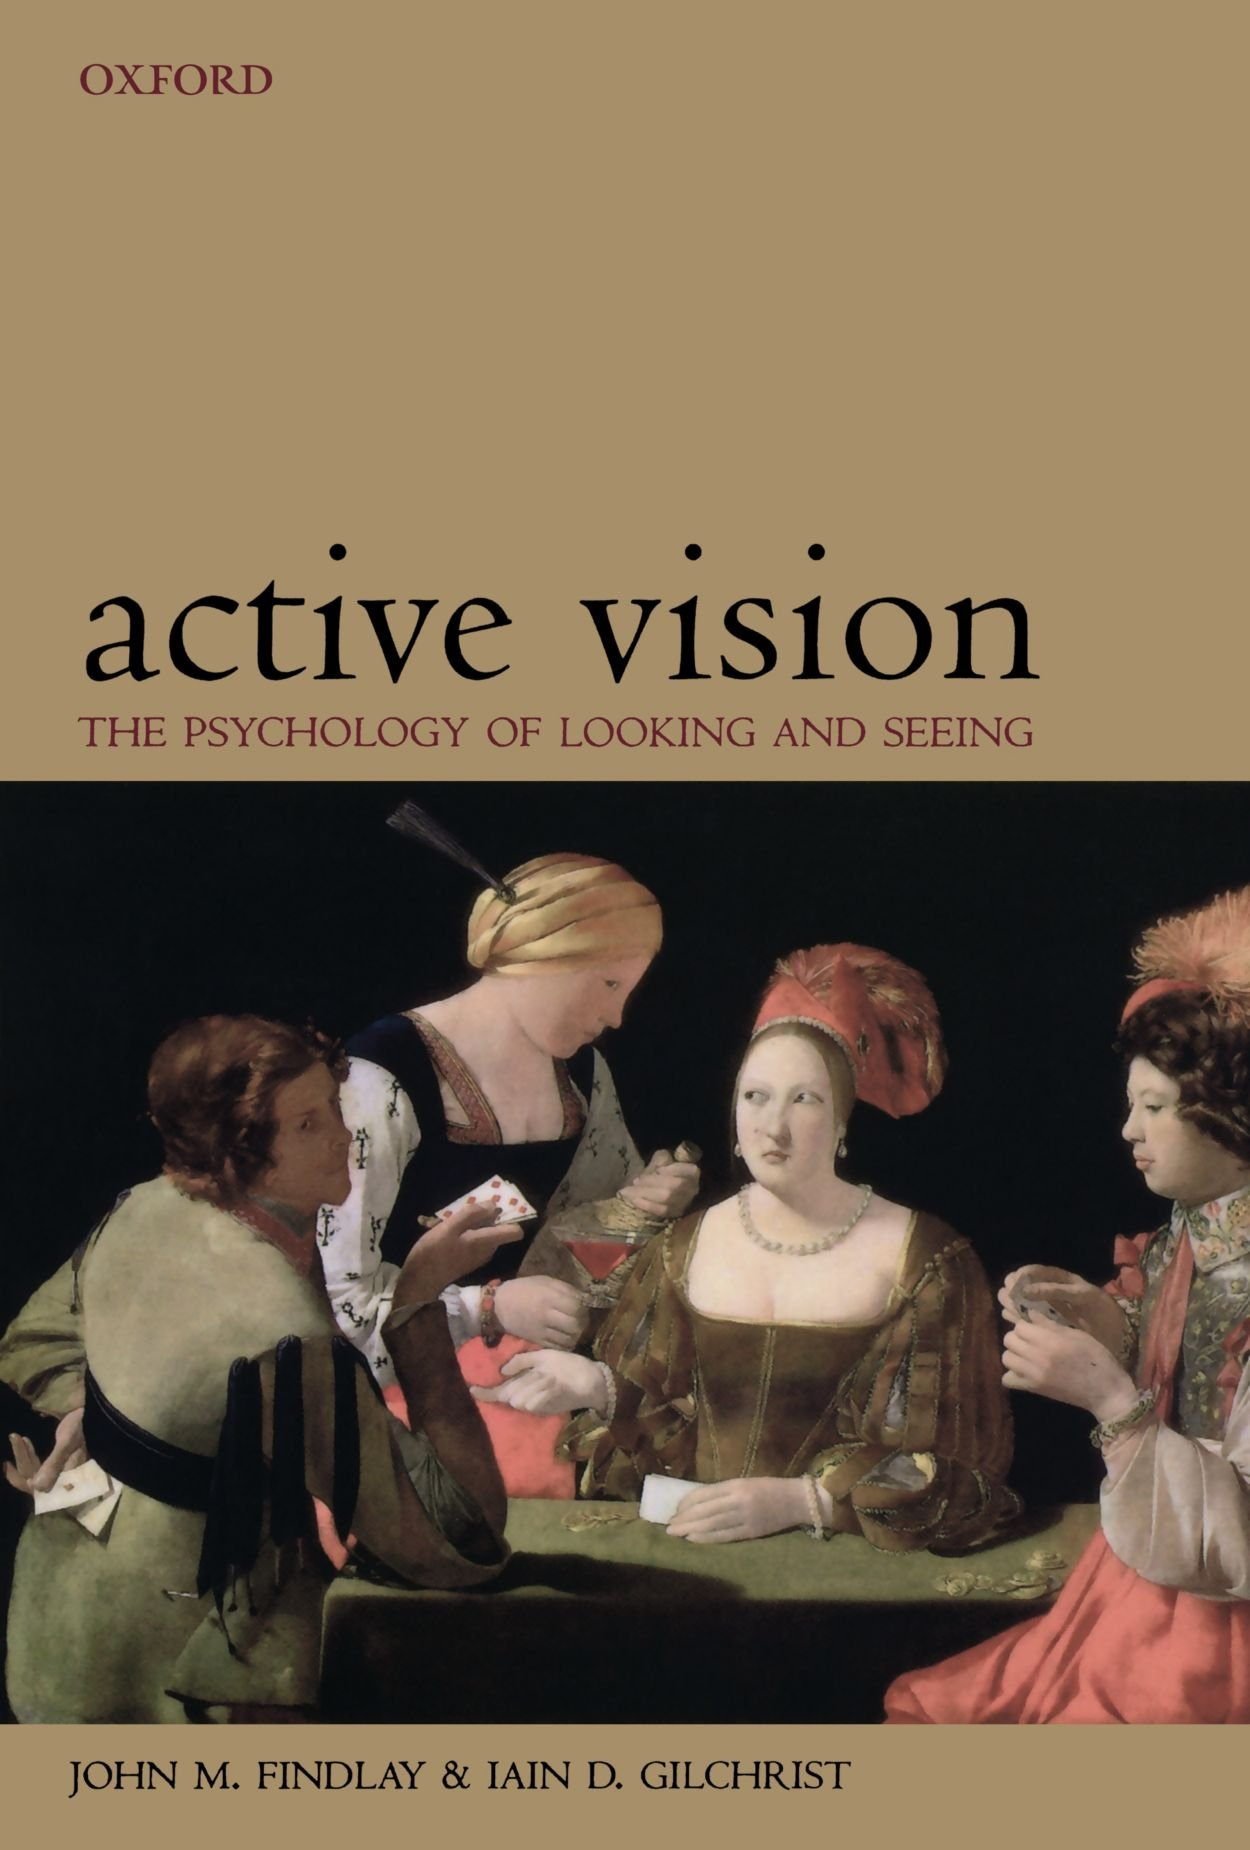 Active vision the psychology of looking and seeing oxford active vision the psychology of looking and seeing oxford psychology oxford psychology series amazon john m findlay books fandeluxe Choice Image